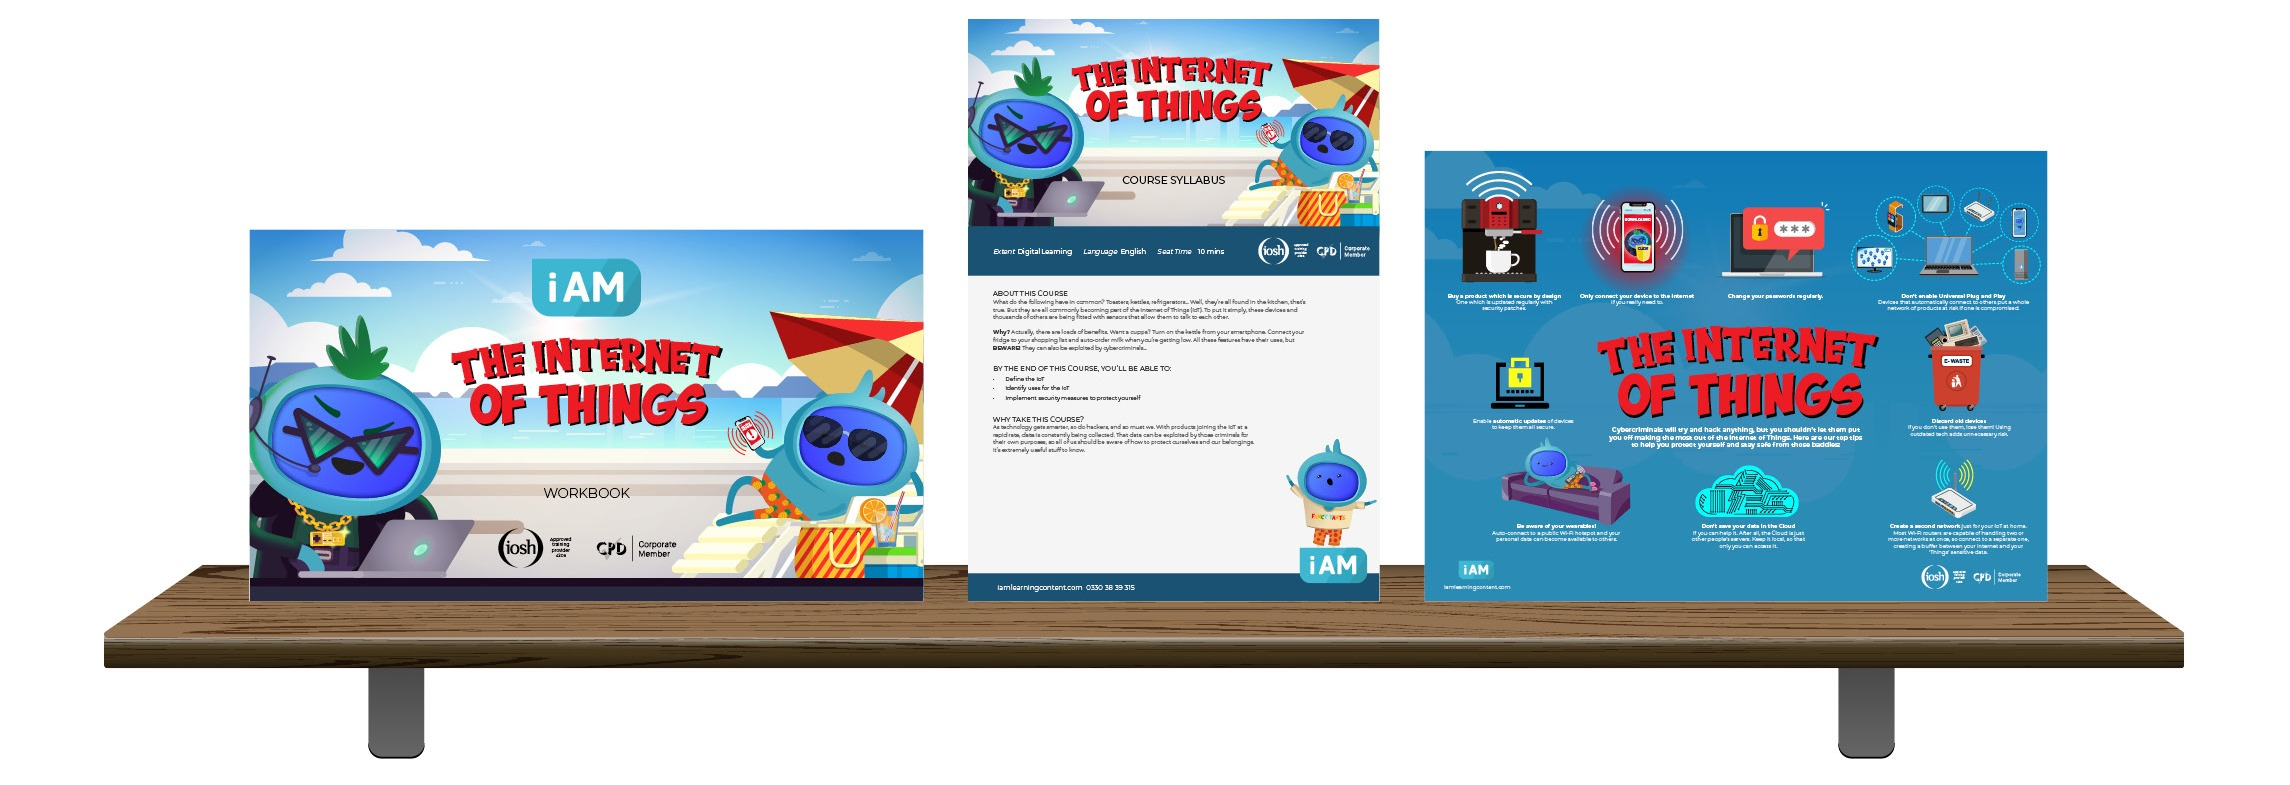 iAM 00062 - The Internet of Things - Landing Page8